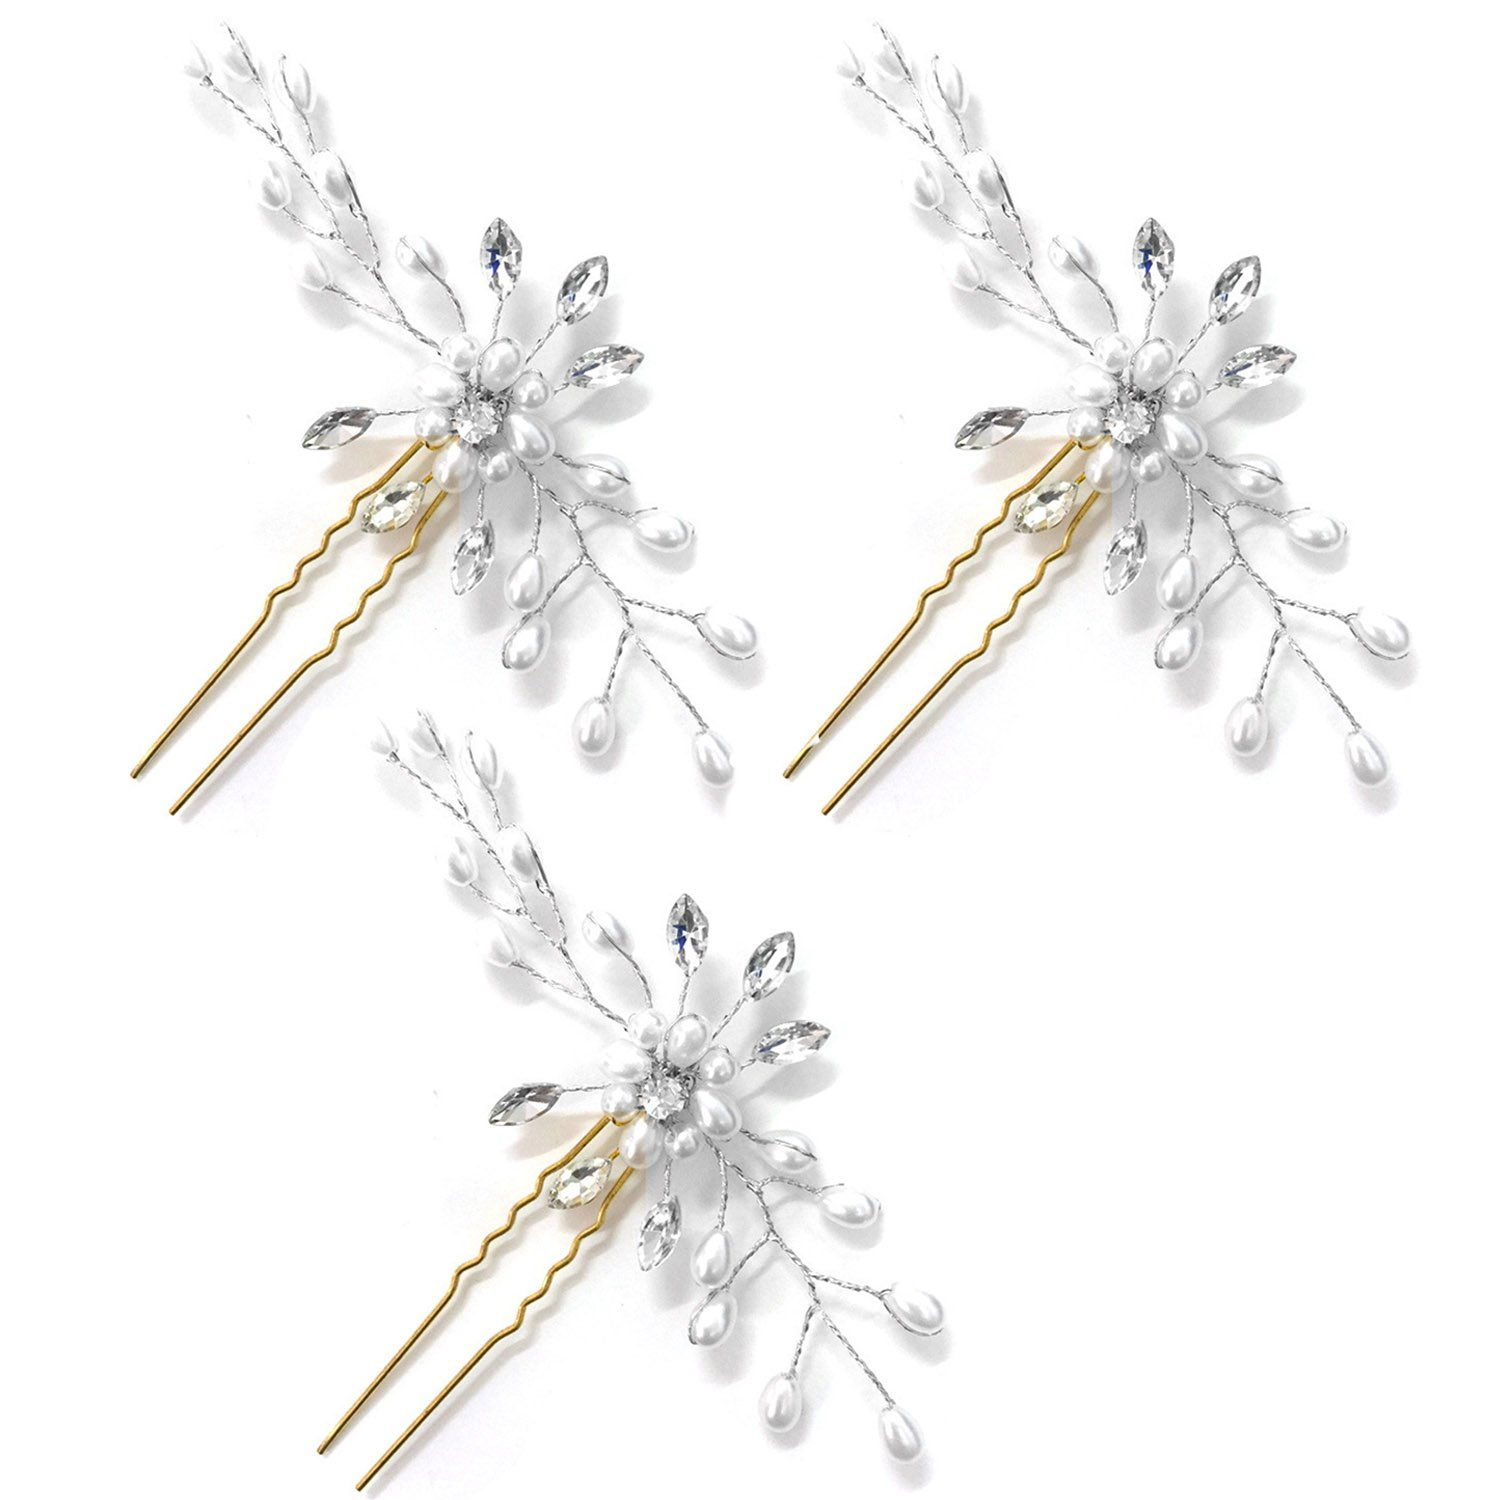 Gosear 3 PCS Women Wedding Bridal Bridesmaid Flower Style Hair Pins Clips with Shiny Imitation Pearl for Anniversary Party Dating Wedding